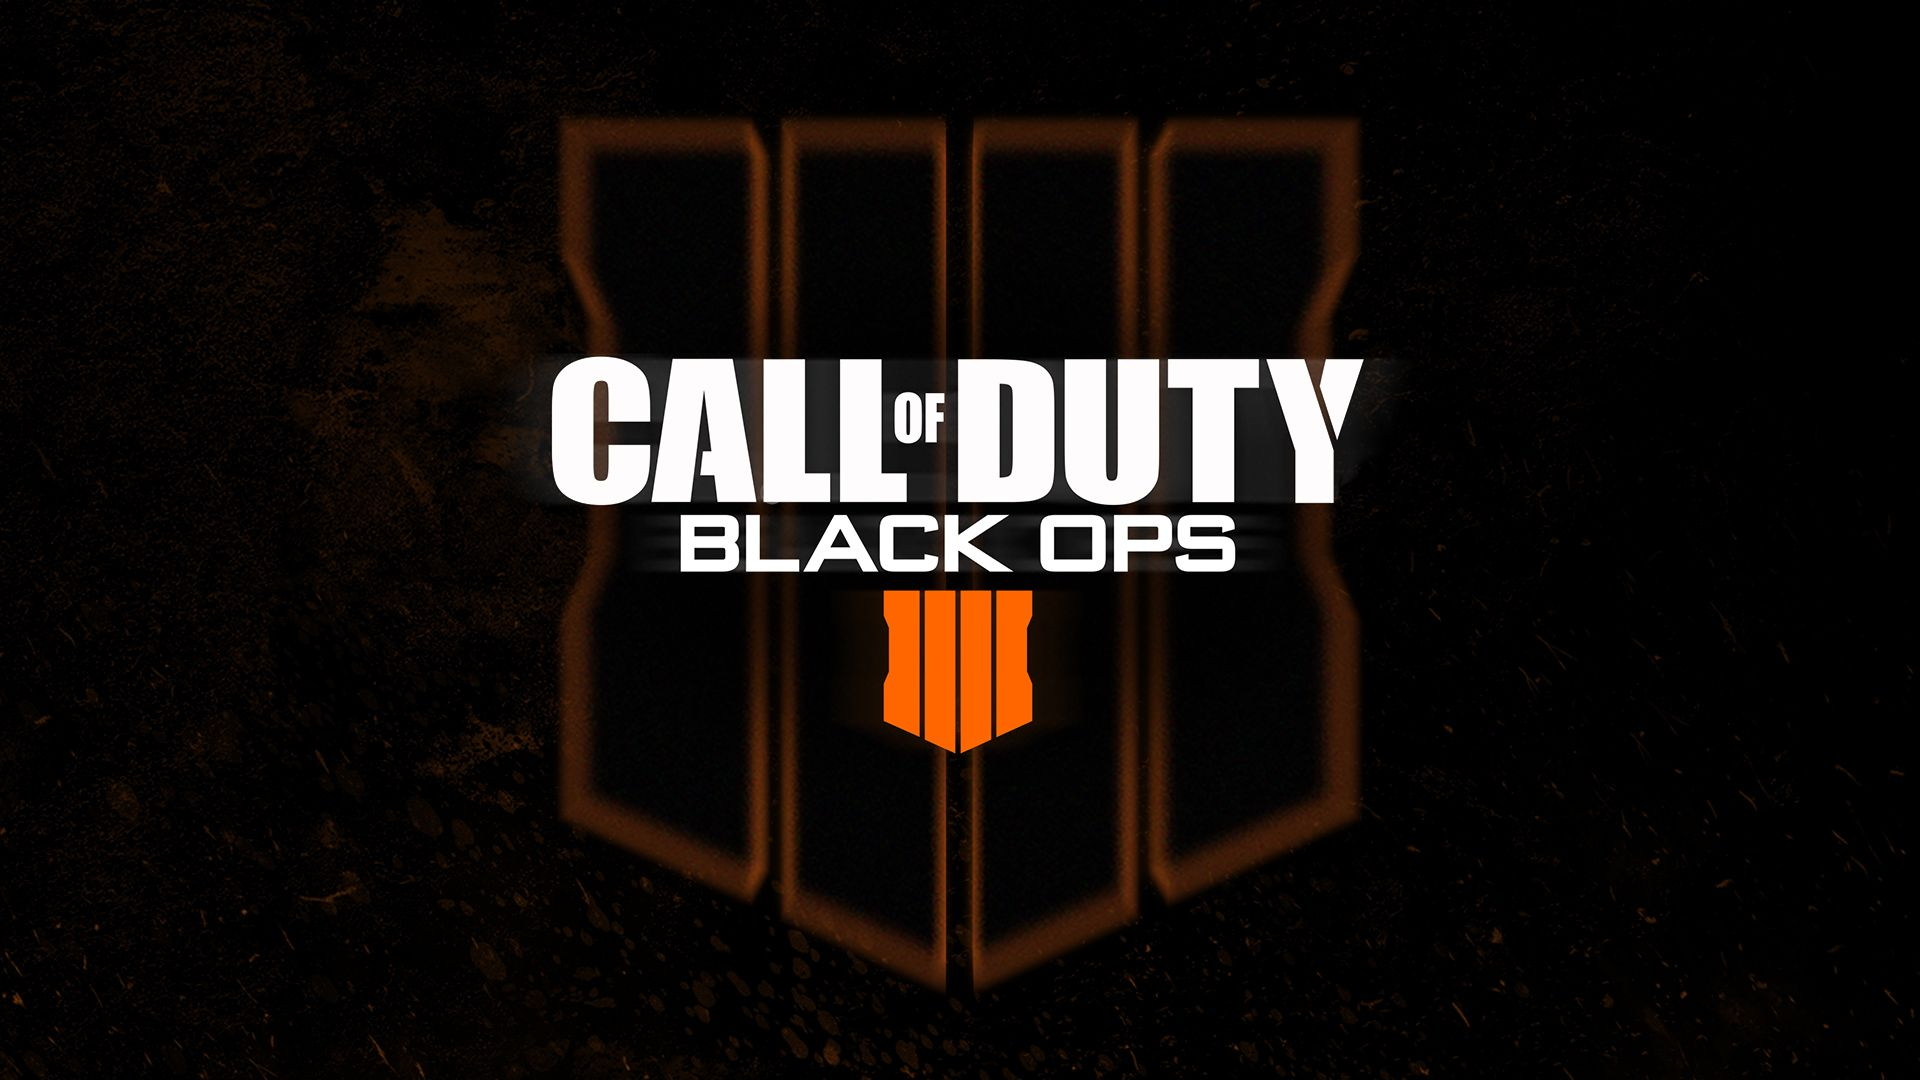 call of duty black ops 4 wallpaper 1920x1080